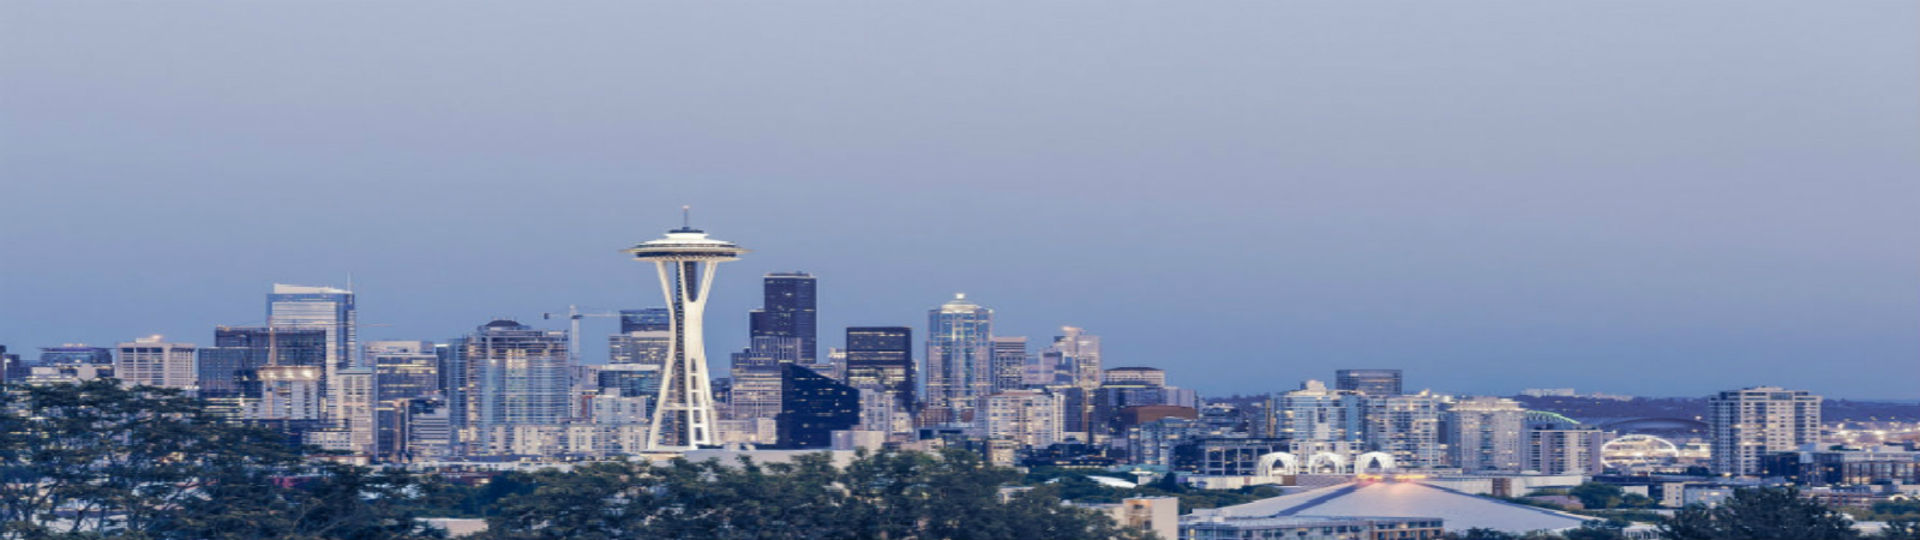 Real Estate Update: The Pulse of Seattle's Market – July 2017